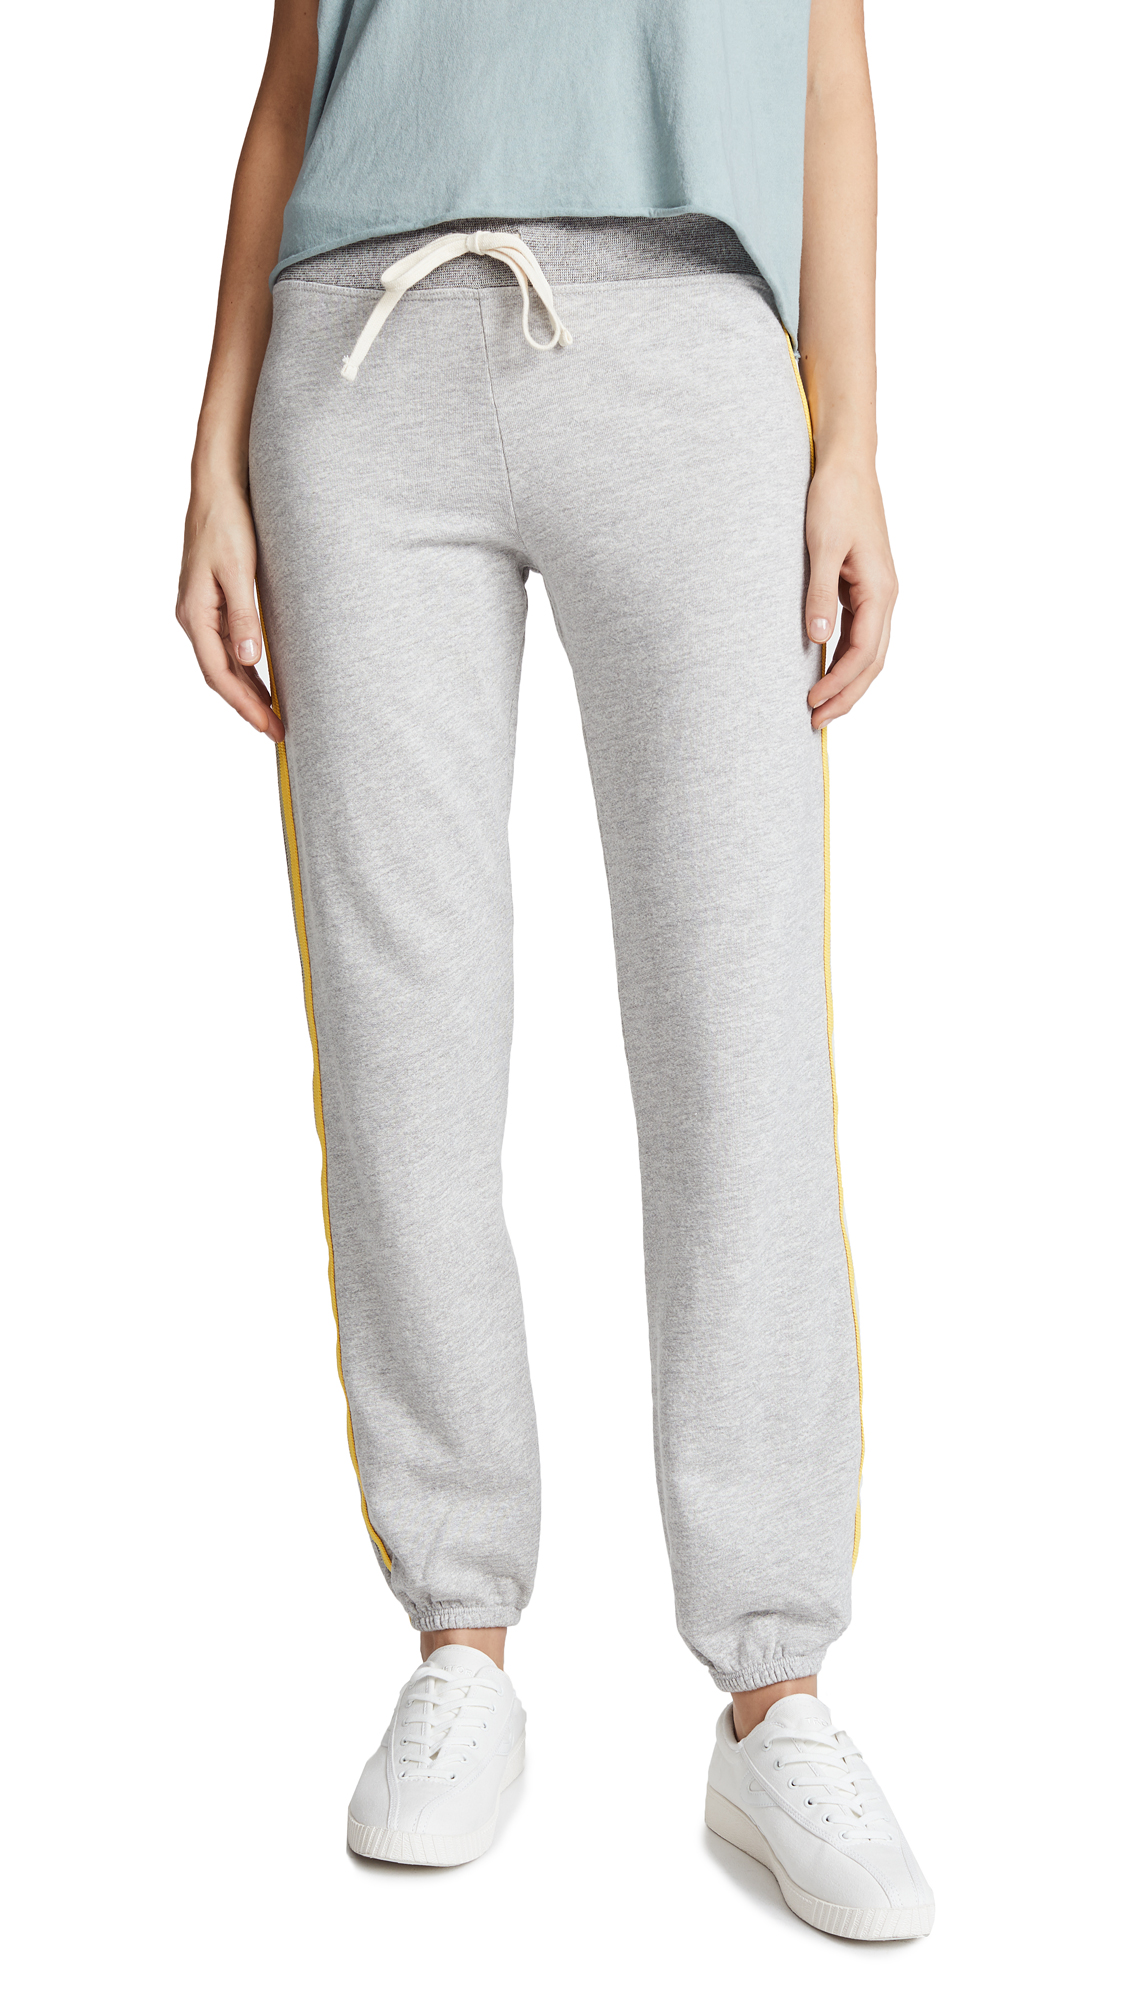 SUNDRY Basic Sweatpants with Stripes